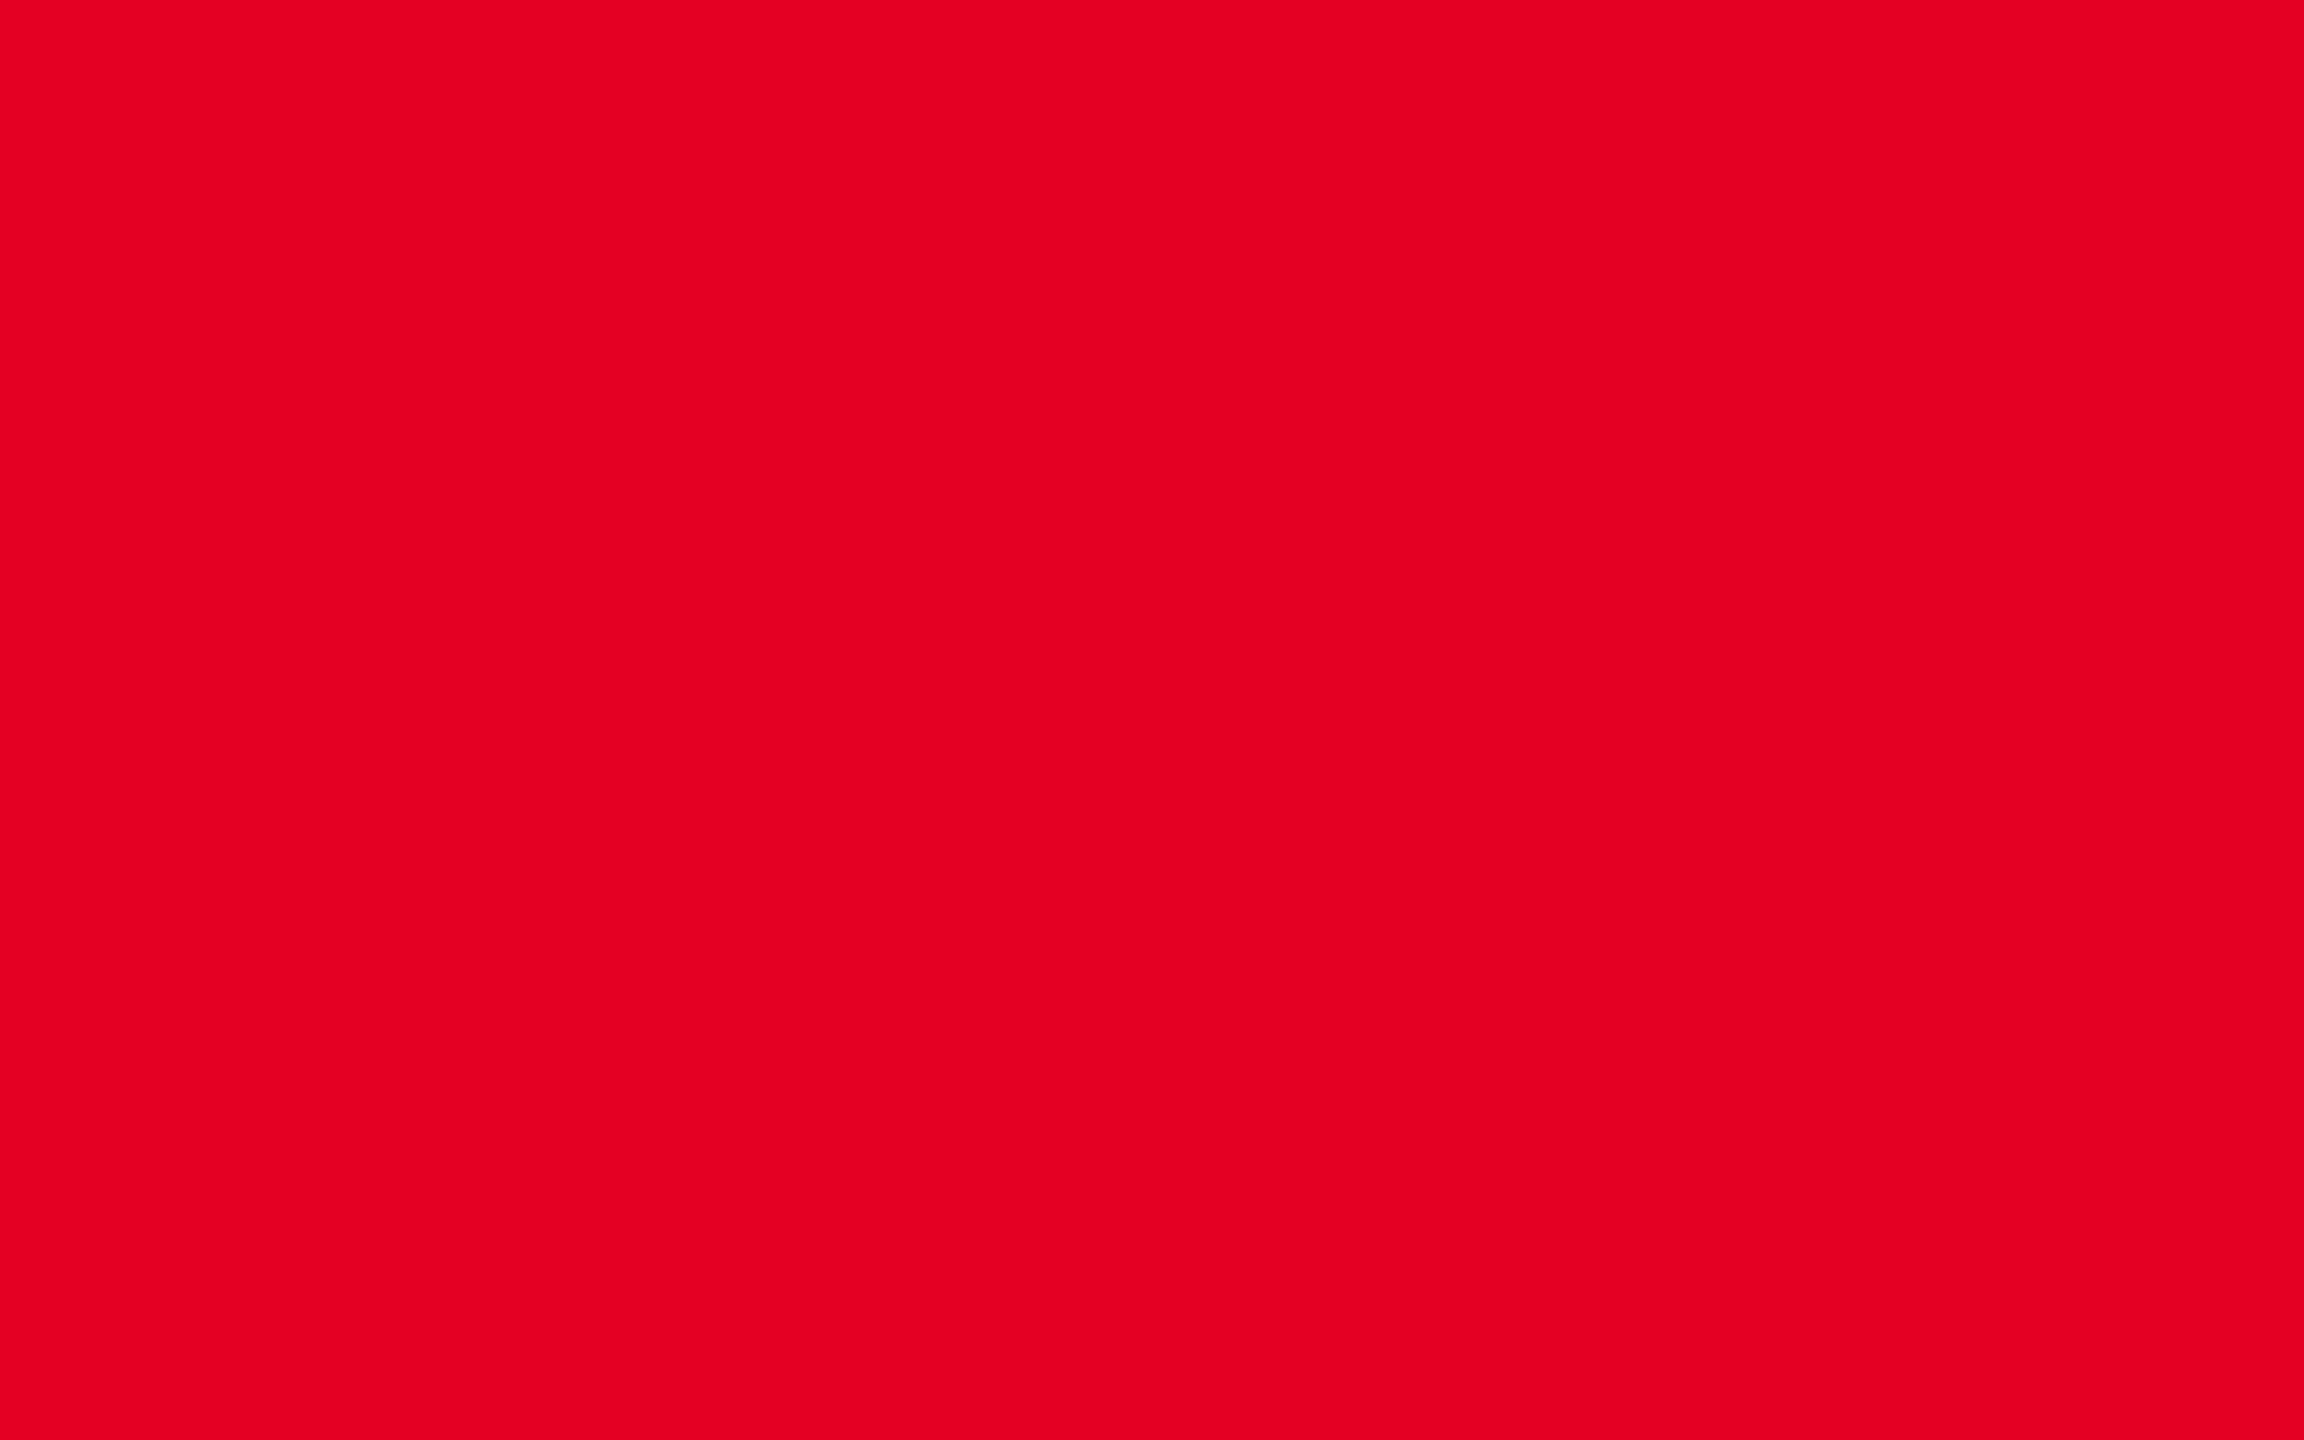 2304x1440 Cadmium Red Solid Color Background